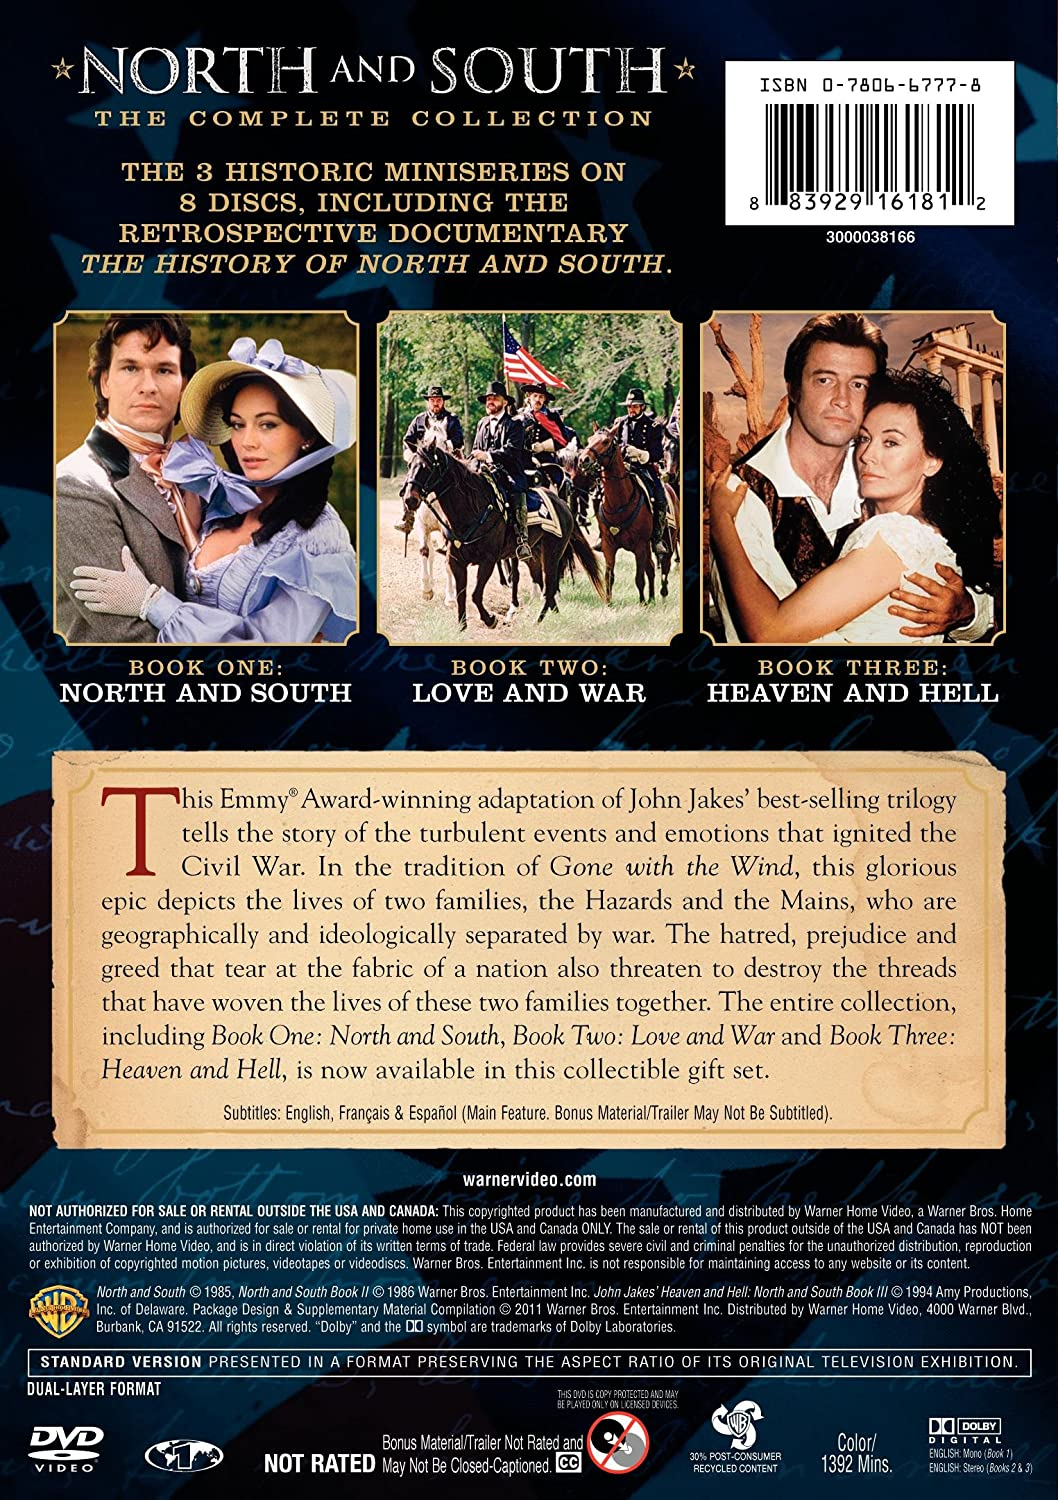 Amazon.com: North and South: The Complete Collection: David Carradine,  Patrick Swayze, Philip Casnoff, James Read, Kirstie Alley: Movies & TV